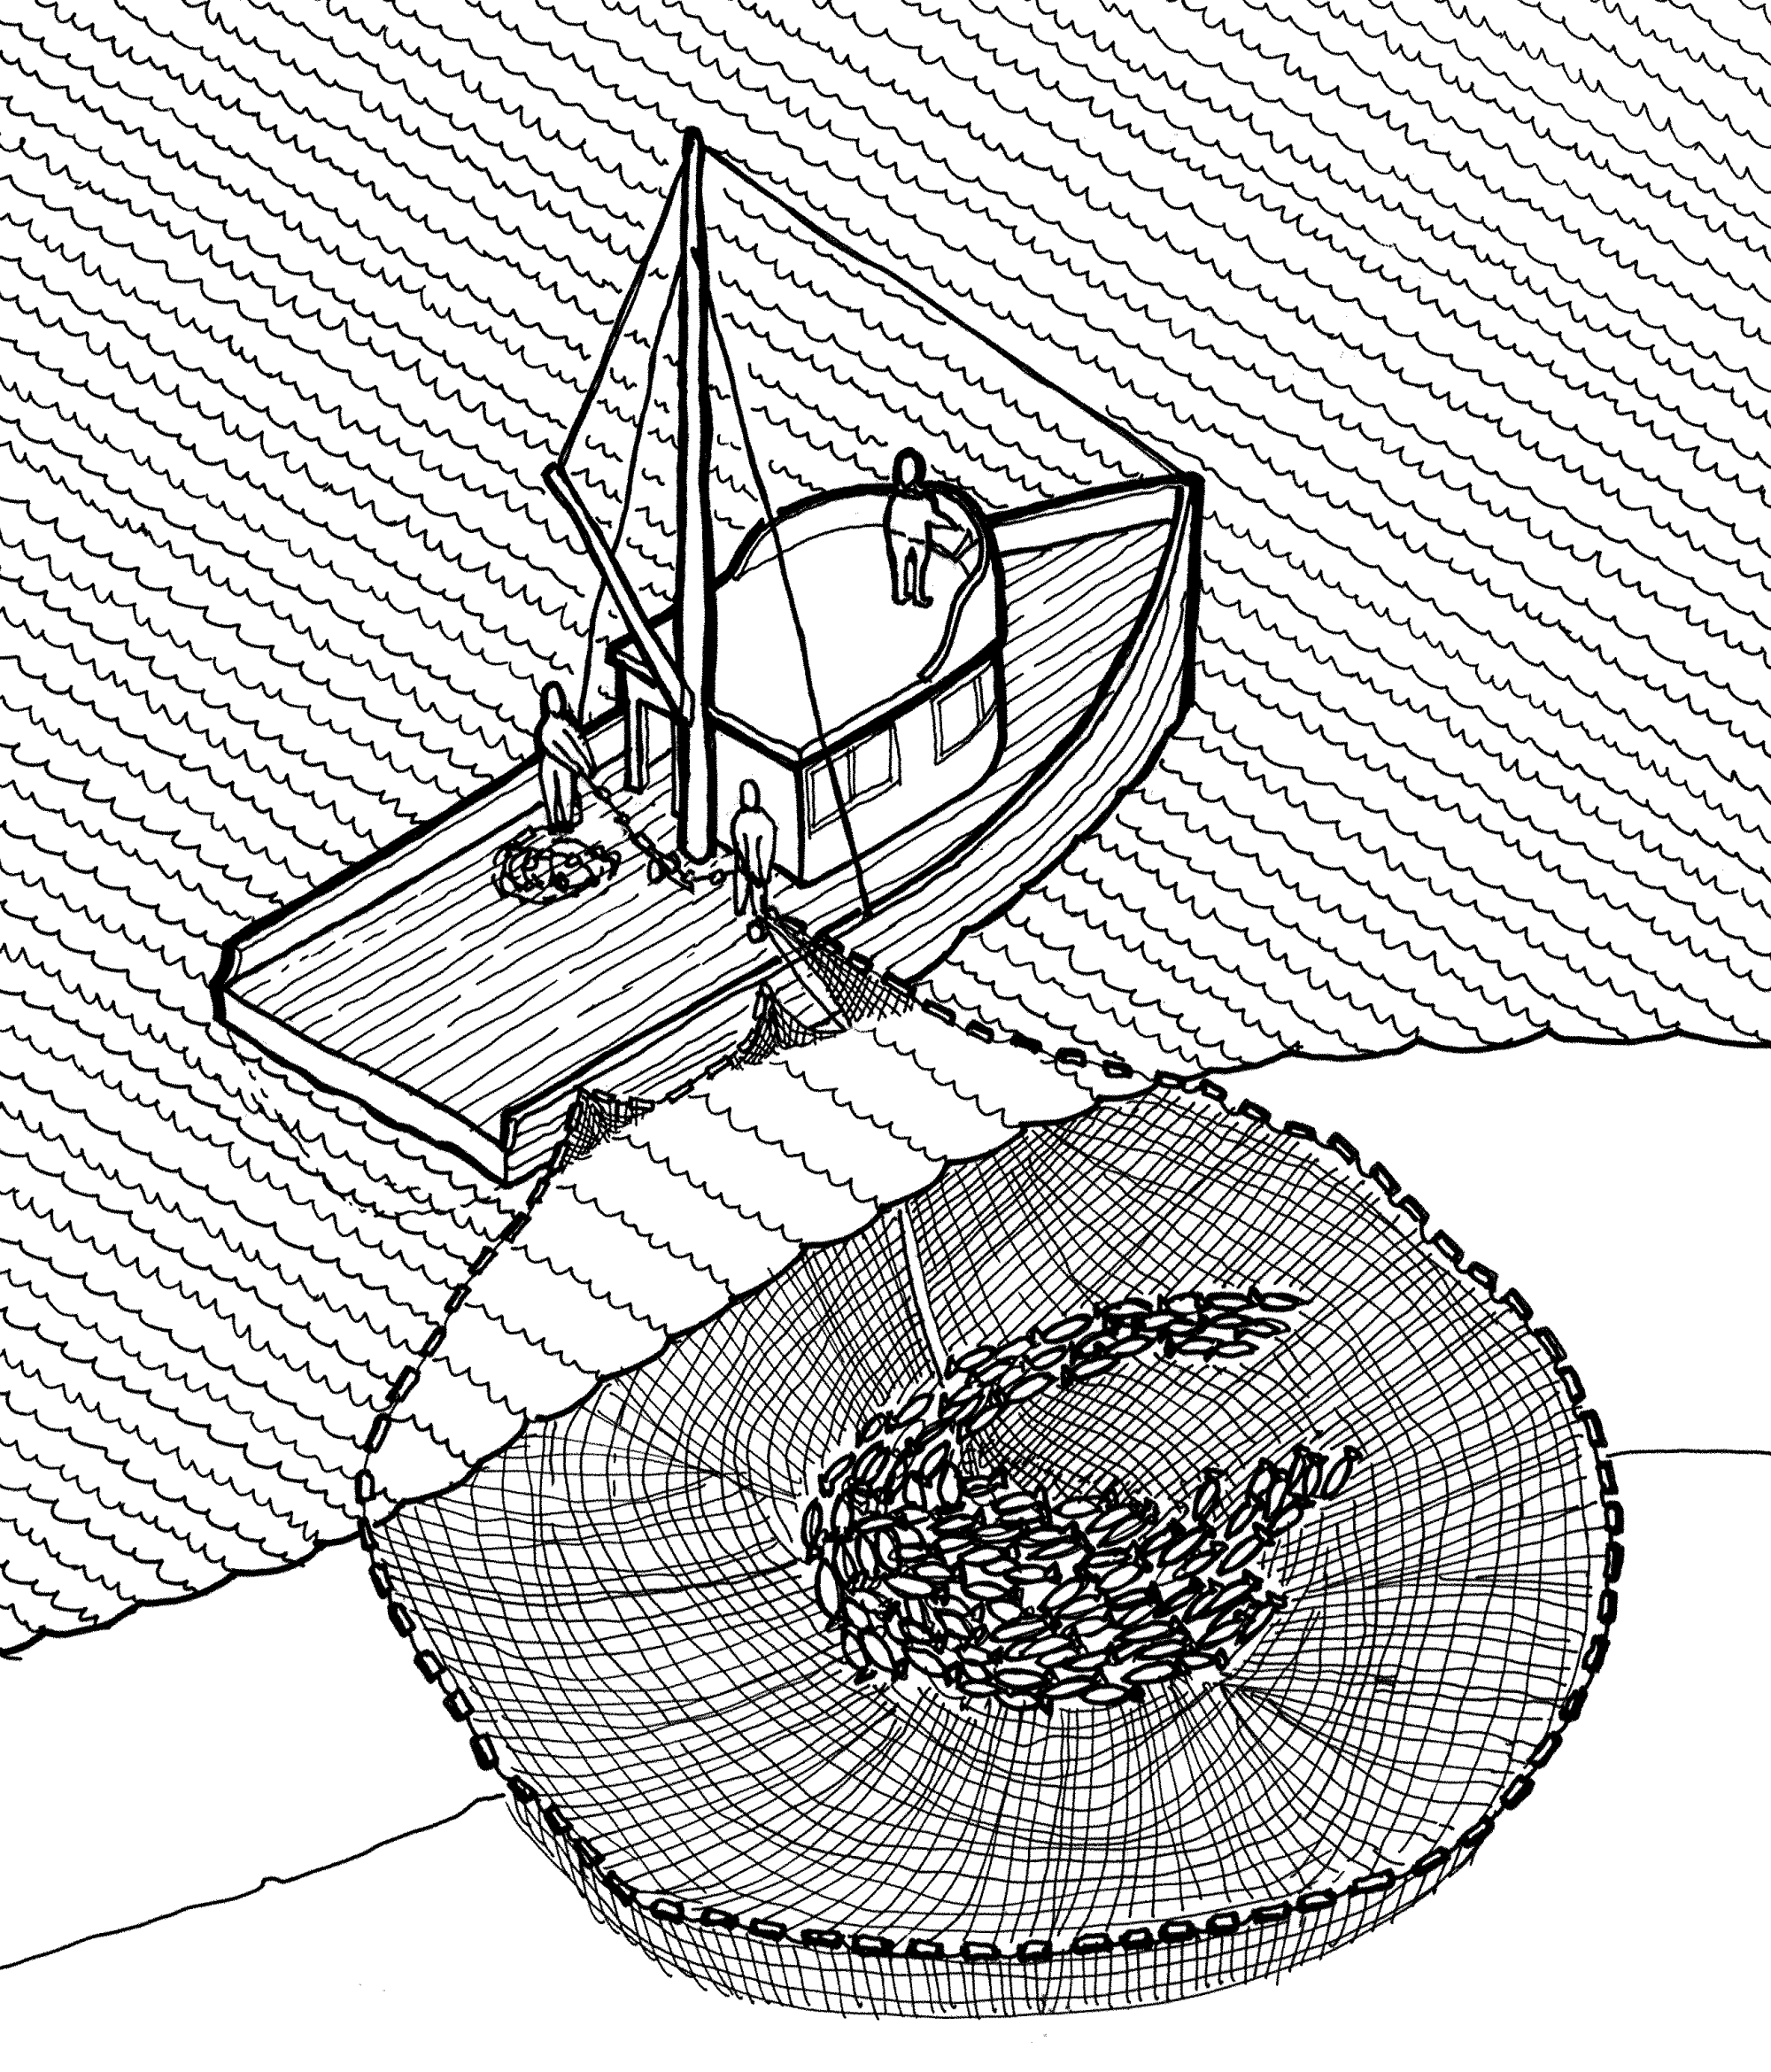 hight resolution of file purse seine illustration historic american engineering record png